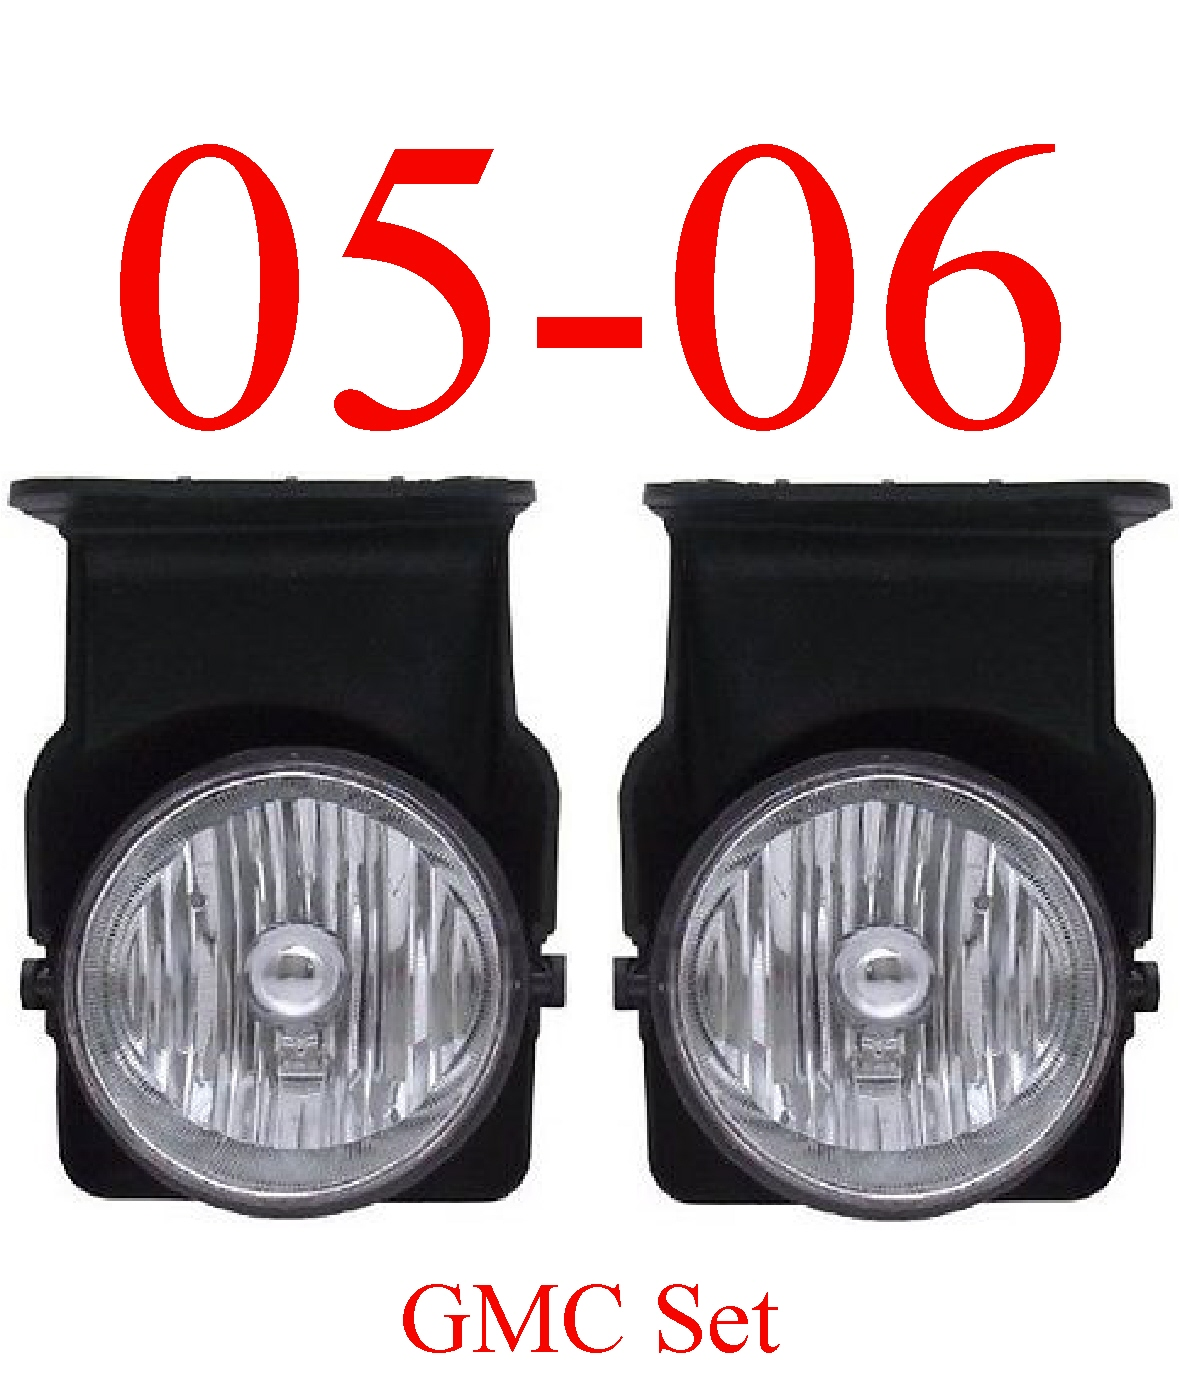 05-06 GMC Truck Fog Light Set